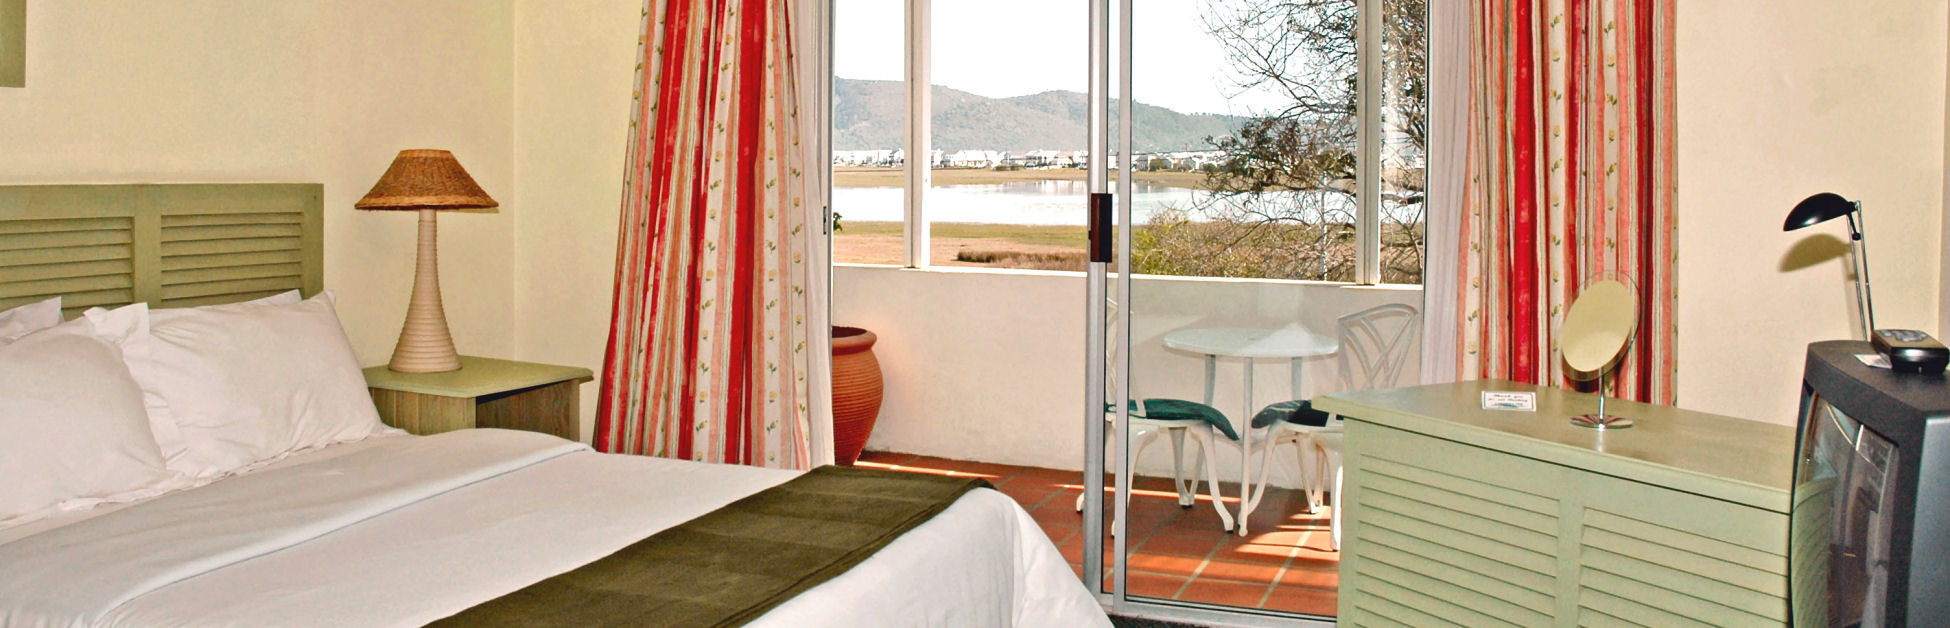 Accommodation at Lagoona Inn, Guest House, Knysna Garden Route South Africa